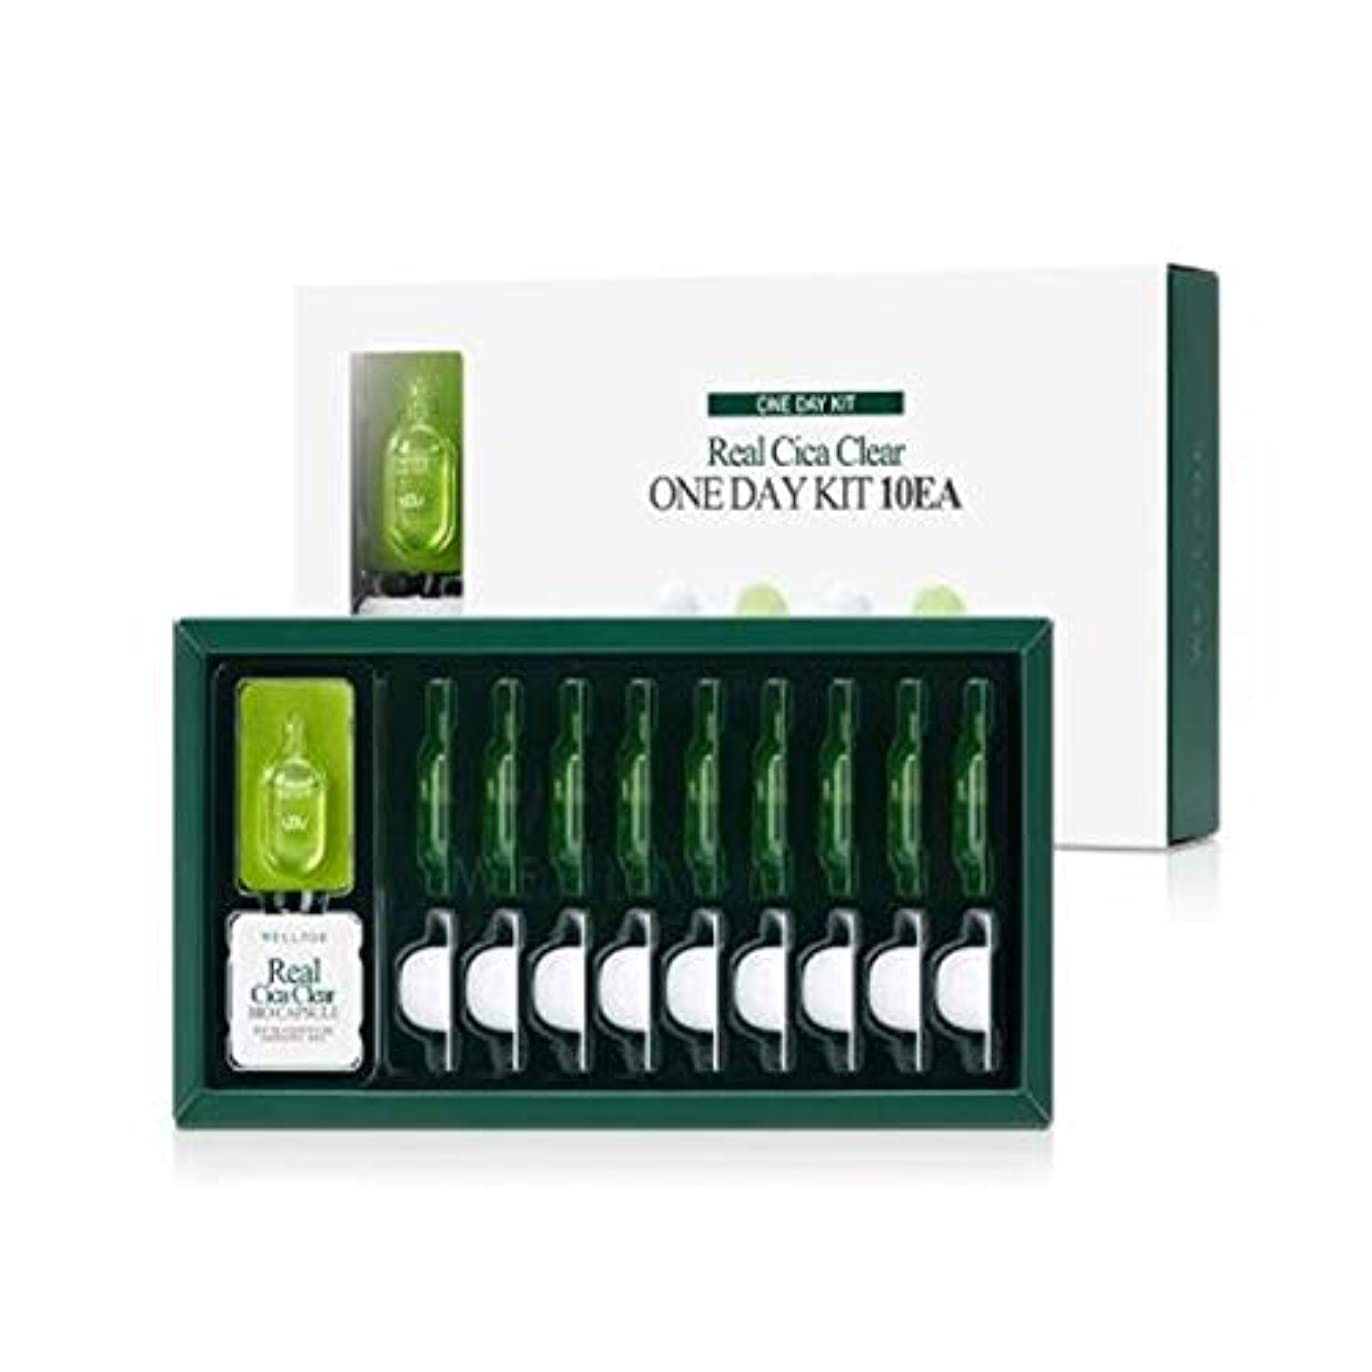 WELLAGE(ウェラージュ) リアルシカクリアワンデイキット 10EA / Real Cica Clear One Day Kit